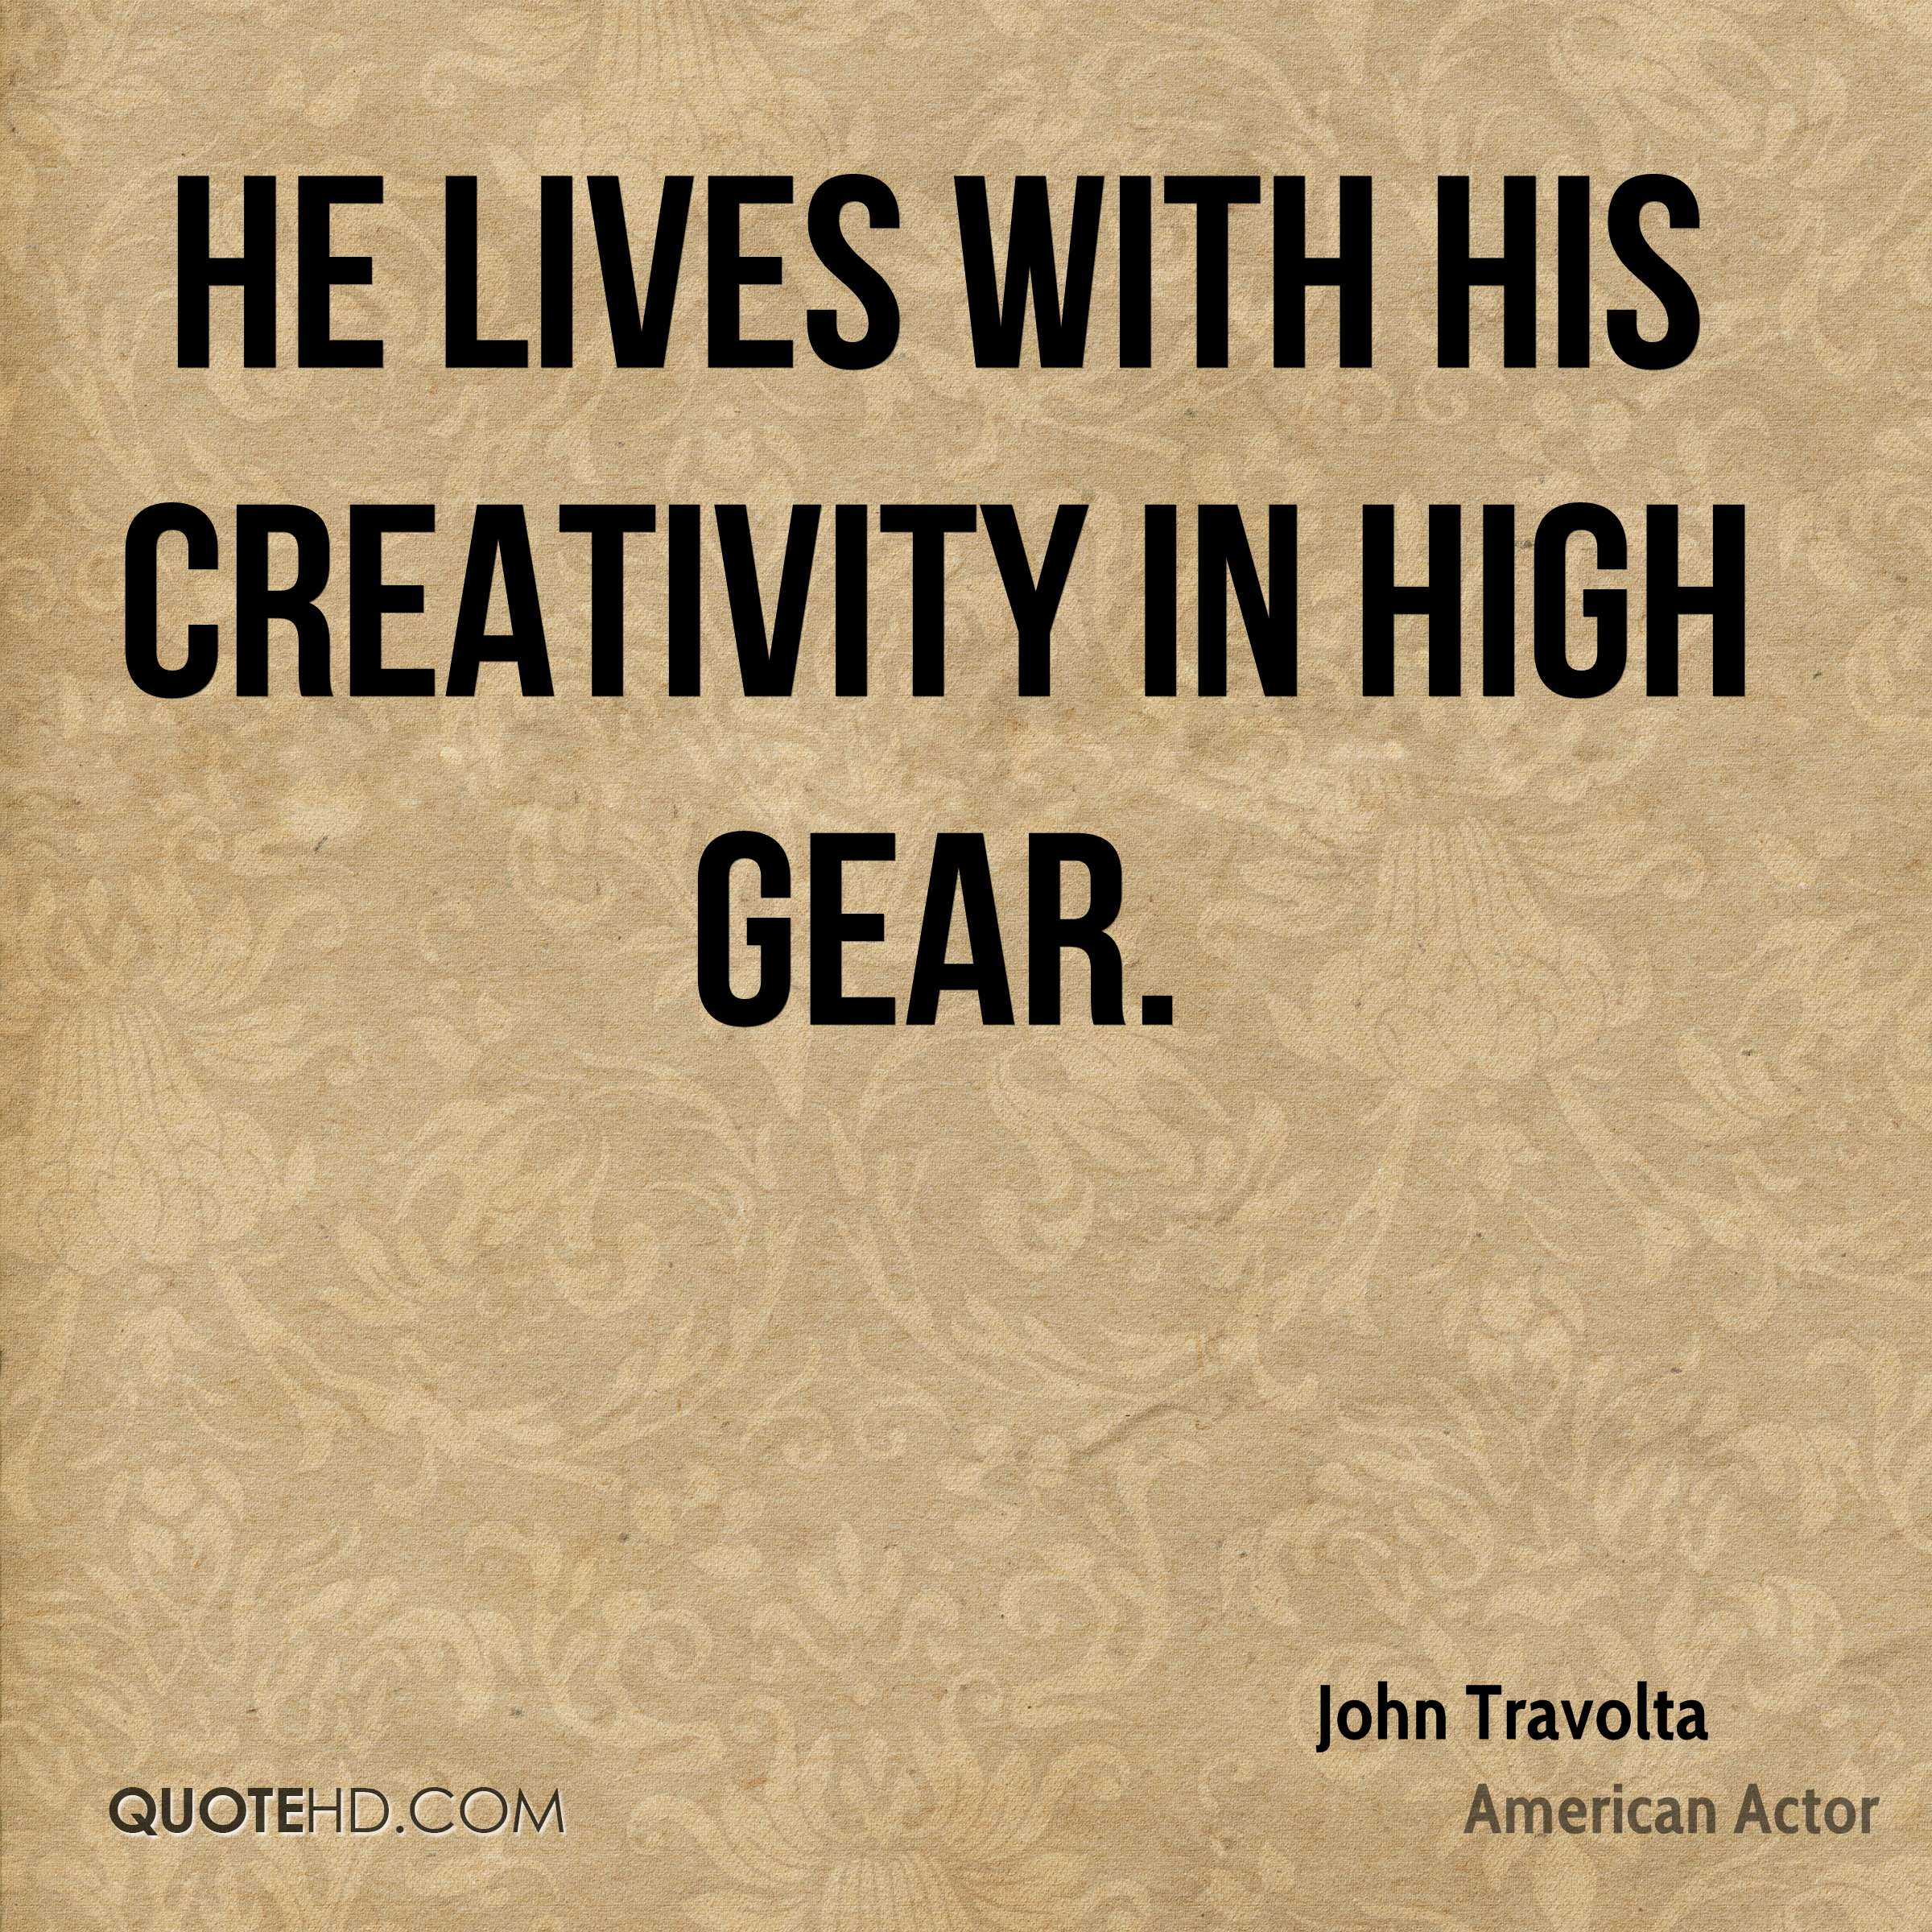 He lives with his creativity in high gear.